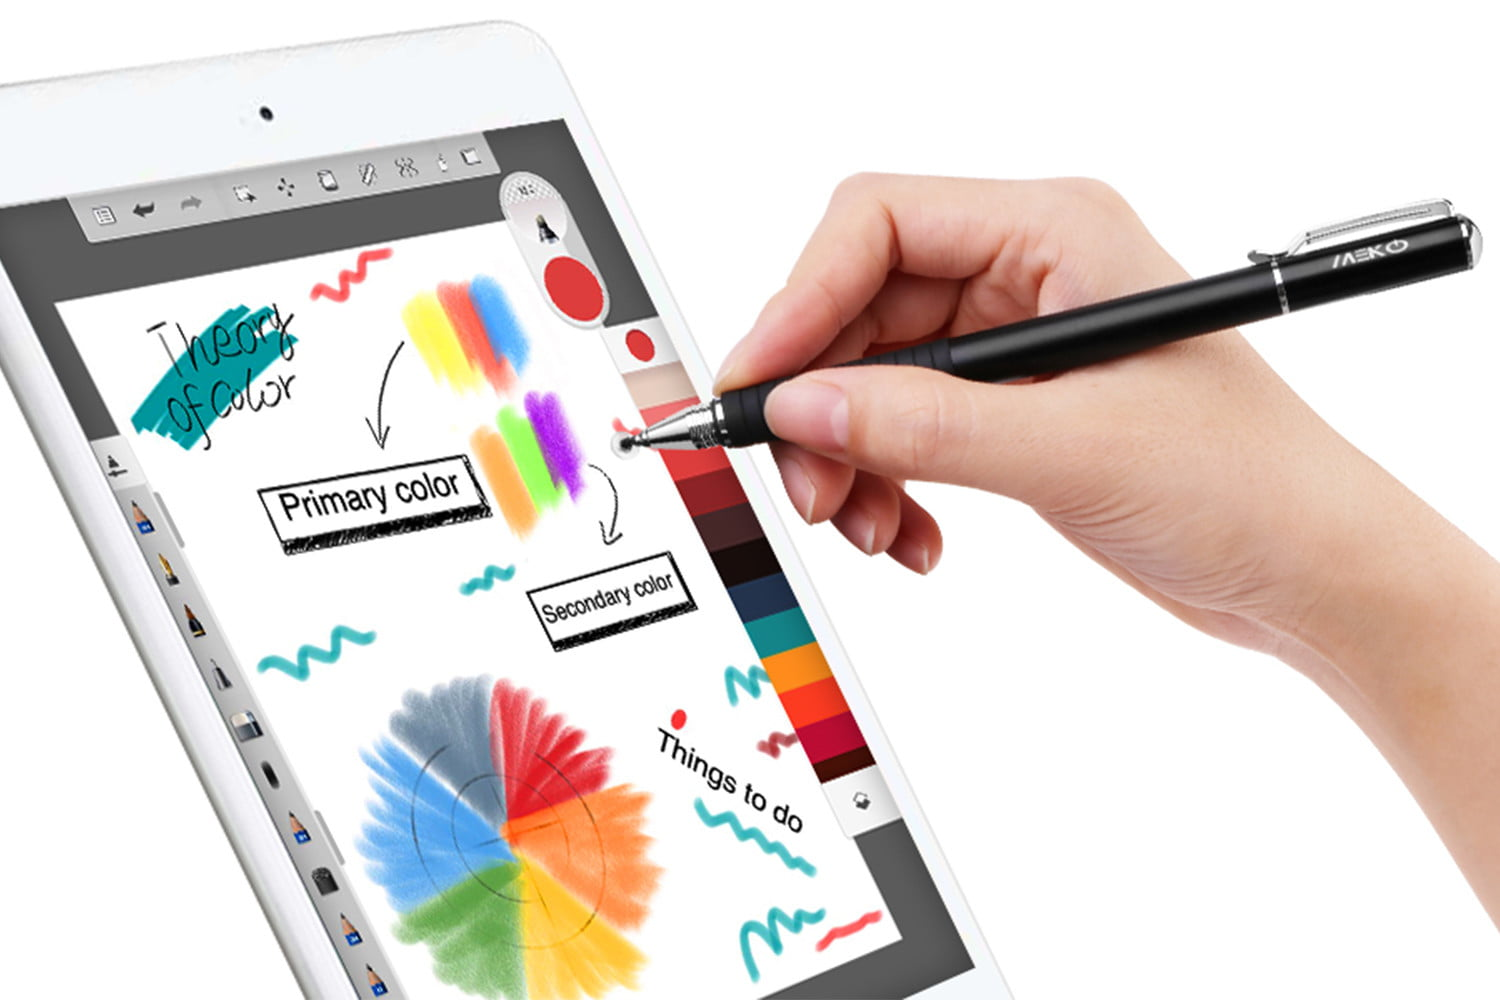 The Best Stylus For Note Takers And Artists Digital Trends